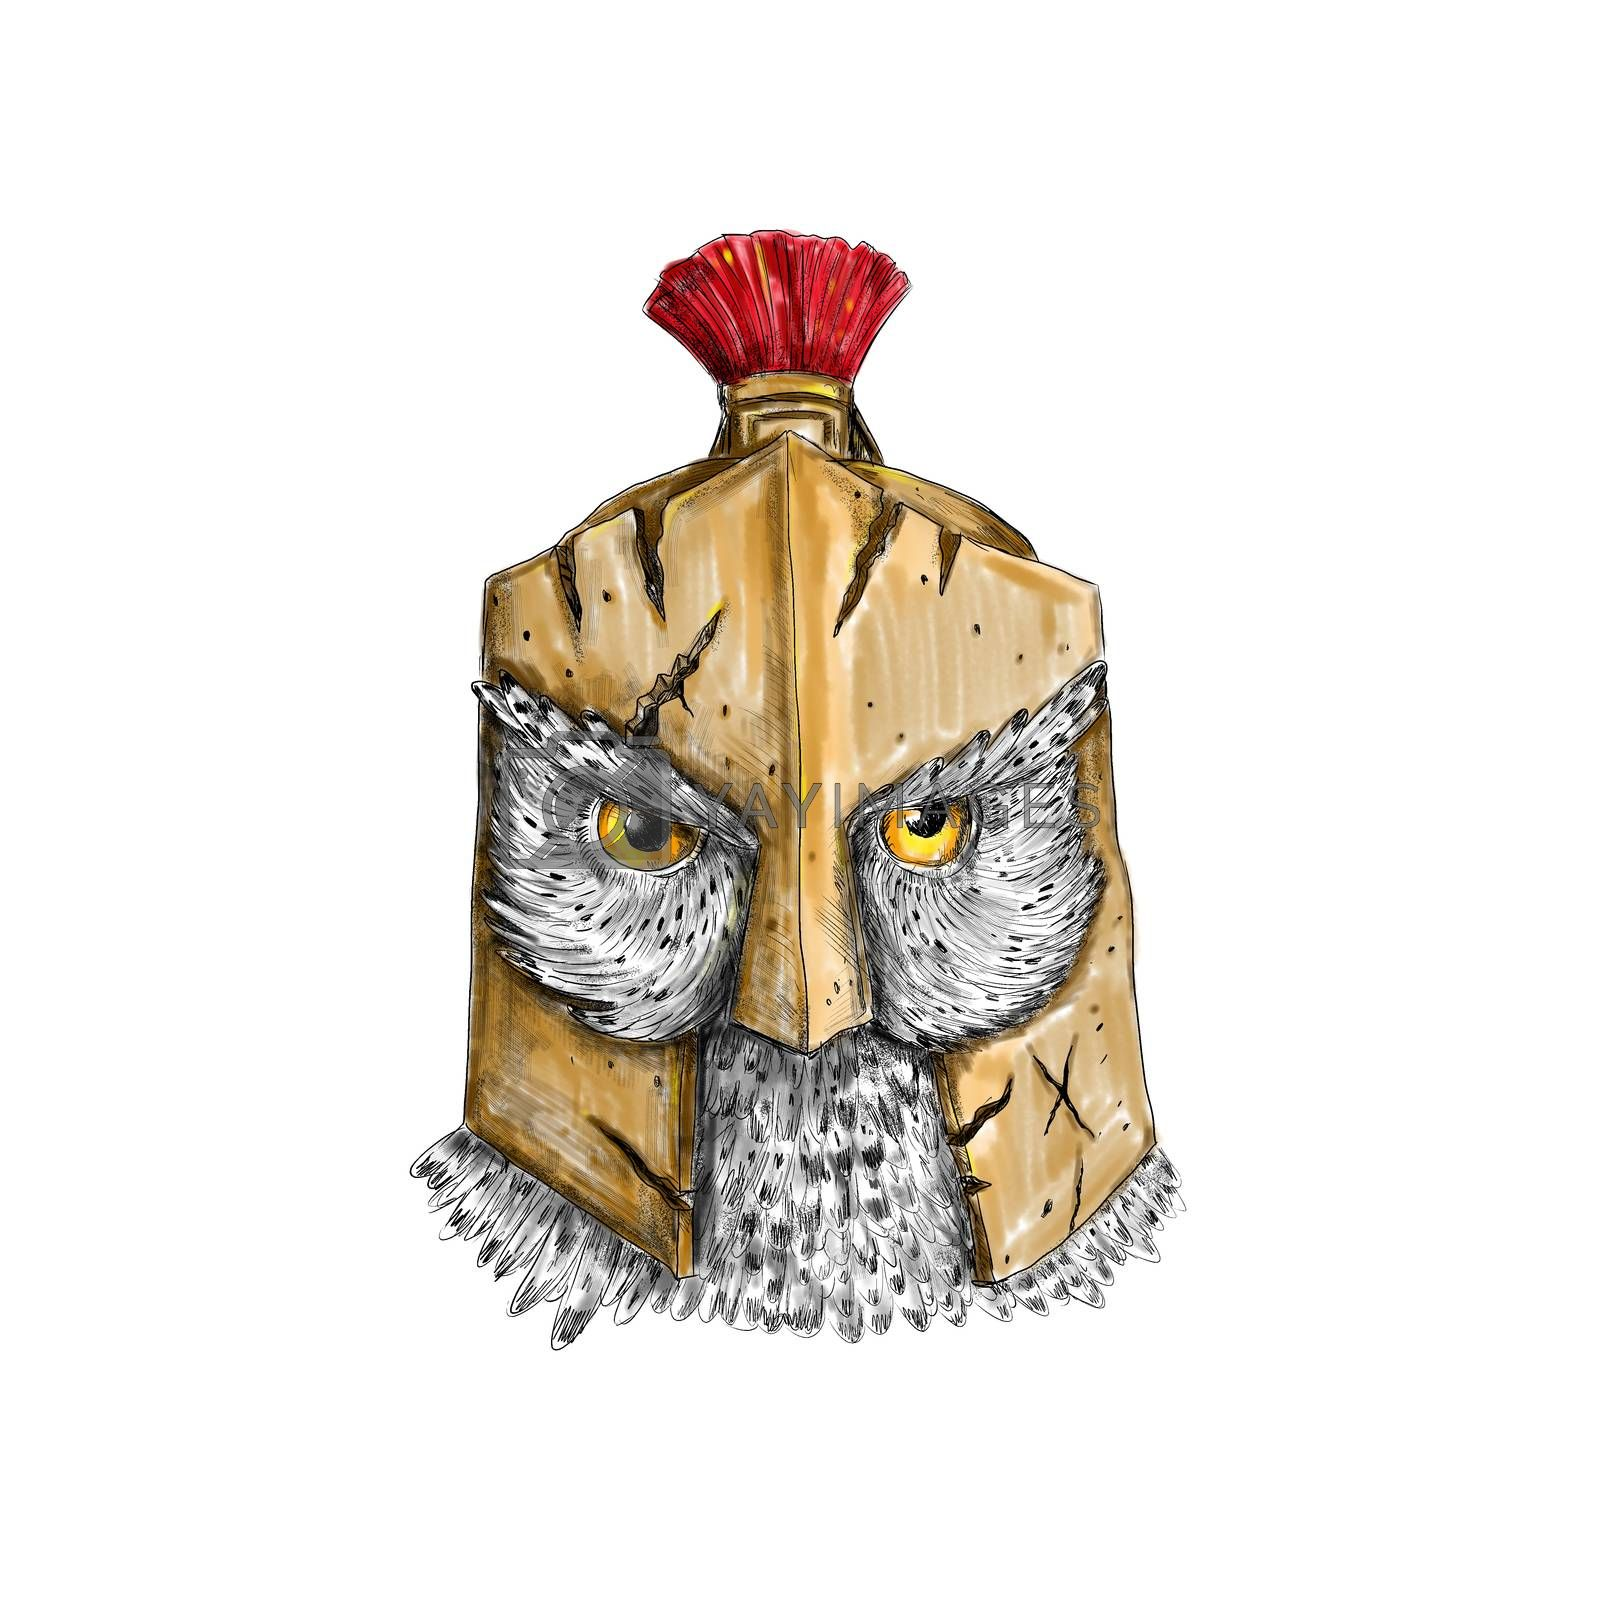 Tattoo style illustration of an owl wearing a spartan helmet viewed from front.